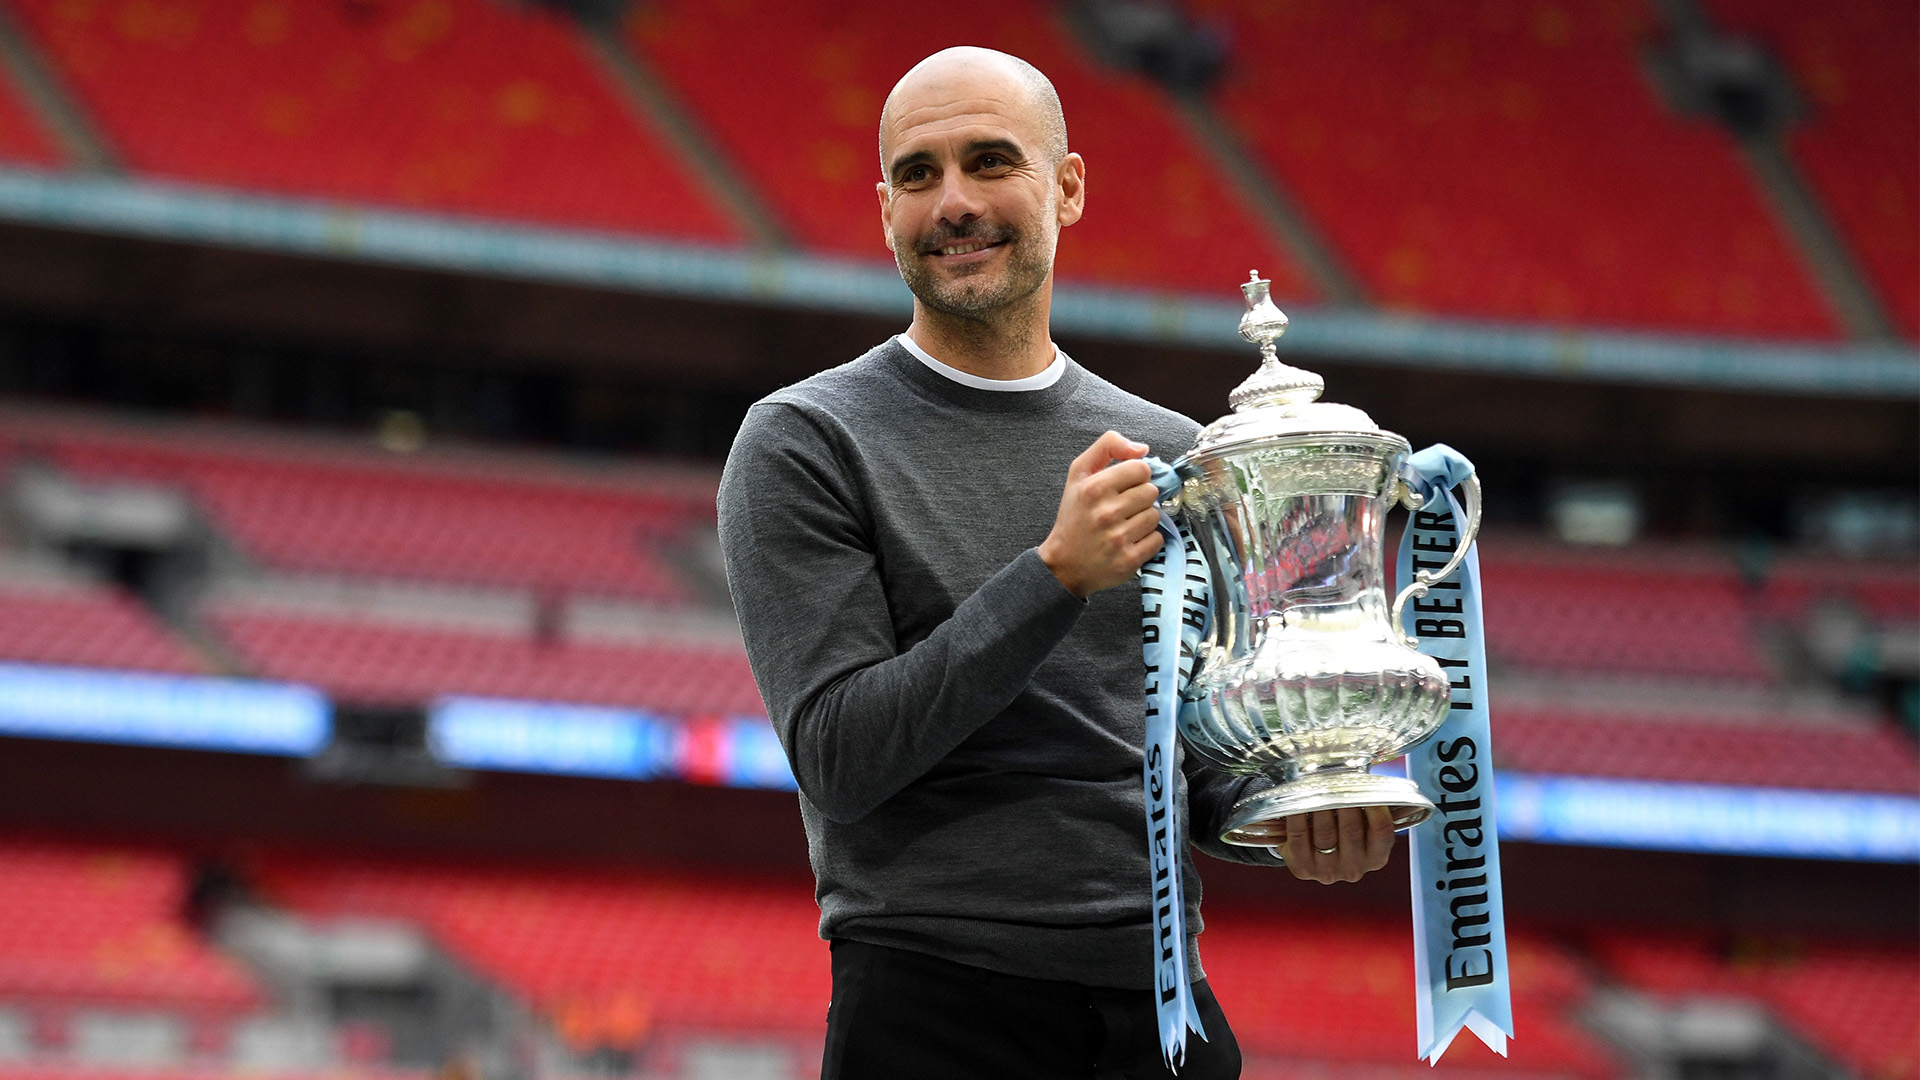 The FA Cup will not have replays for the 2020-21 season to help ease fixture congestion caused by the COVID-19 crisis, England's Football Association (FA) said on Thursday. Next season's competition is scheduled to begin on Sept. 1 only a month after the 2020 final with the showpiece match at Wembley set to take place […]